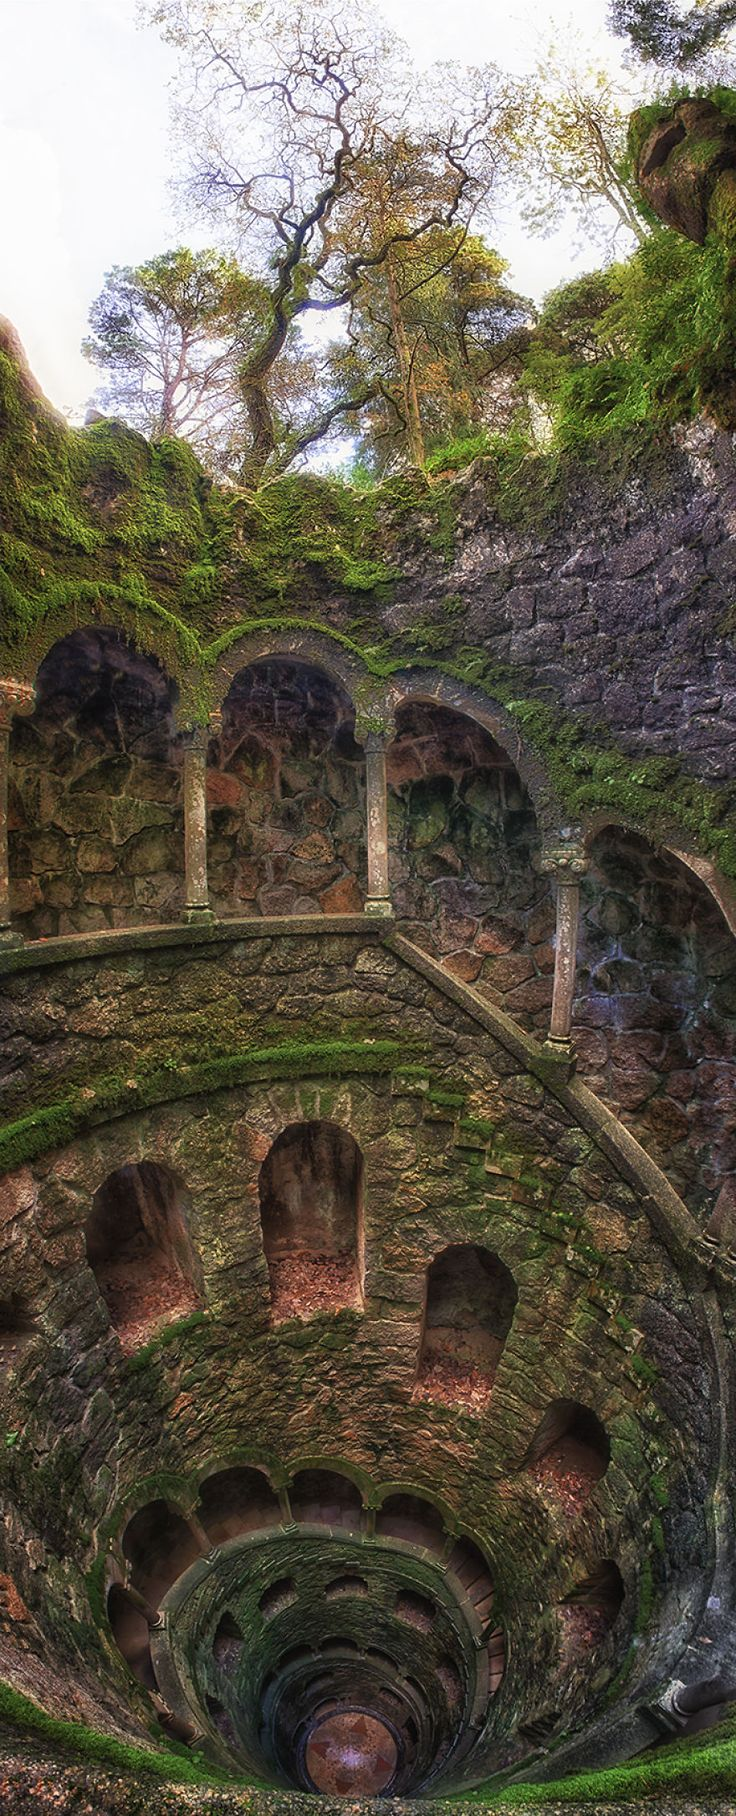 I am a Canadian photographer Taylor Moore. I have captured the magic and mystery of the legendary 'Quinta da Regaleira' located in the UNESCO village of Sintra, Portugal. 'Regaleira' built by (the owner) Antonio Augusto Carvalho Monteiro in conjunction with the renowned Italian opera set designer and architect Luigi Manini. These two noblemen conspired to create a place of divine magic and mystery embodying a combination of styles including Roman, Gothic, Renaissance and Manueline.